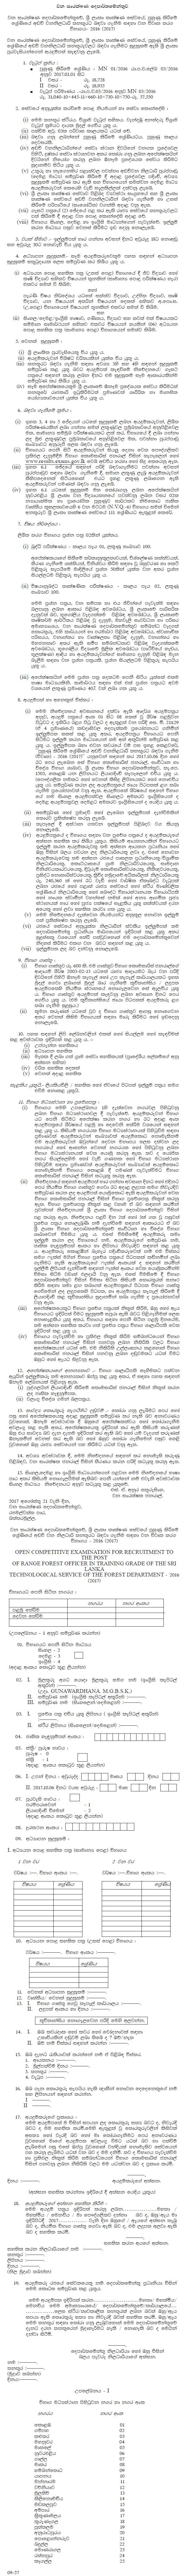 Open Competitive Examination for Recruitment to the post of Range Forest Officer in Training Grade of the Sri Lanka at Technological Service of the Forest Department | CareerFirst